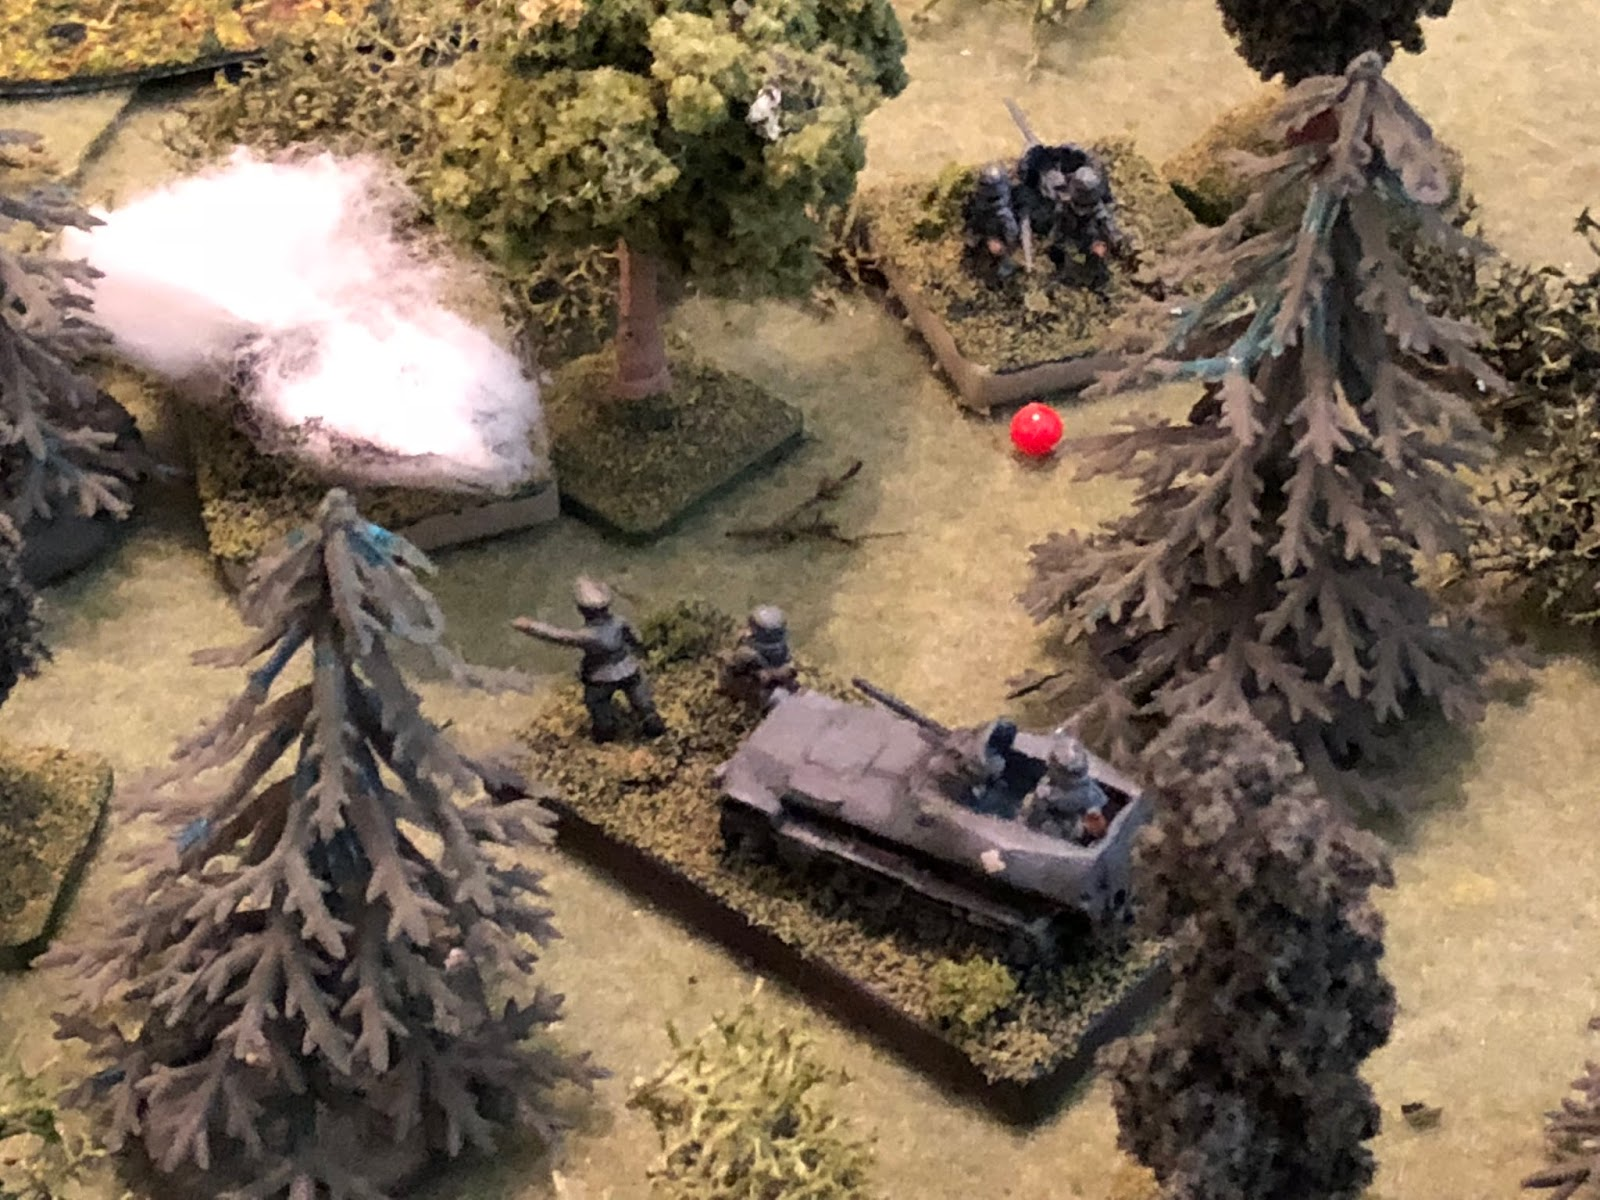 The Commander exults the anti-tank gunners to get back in the fight, and they rally 'up' to Pinned.